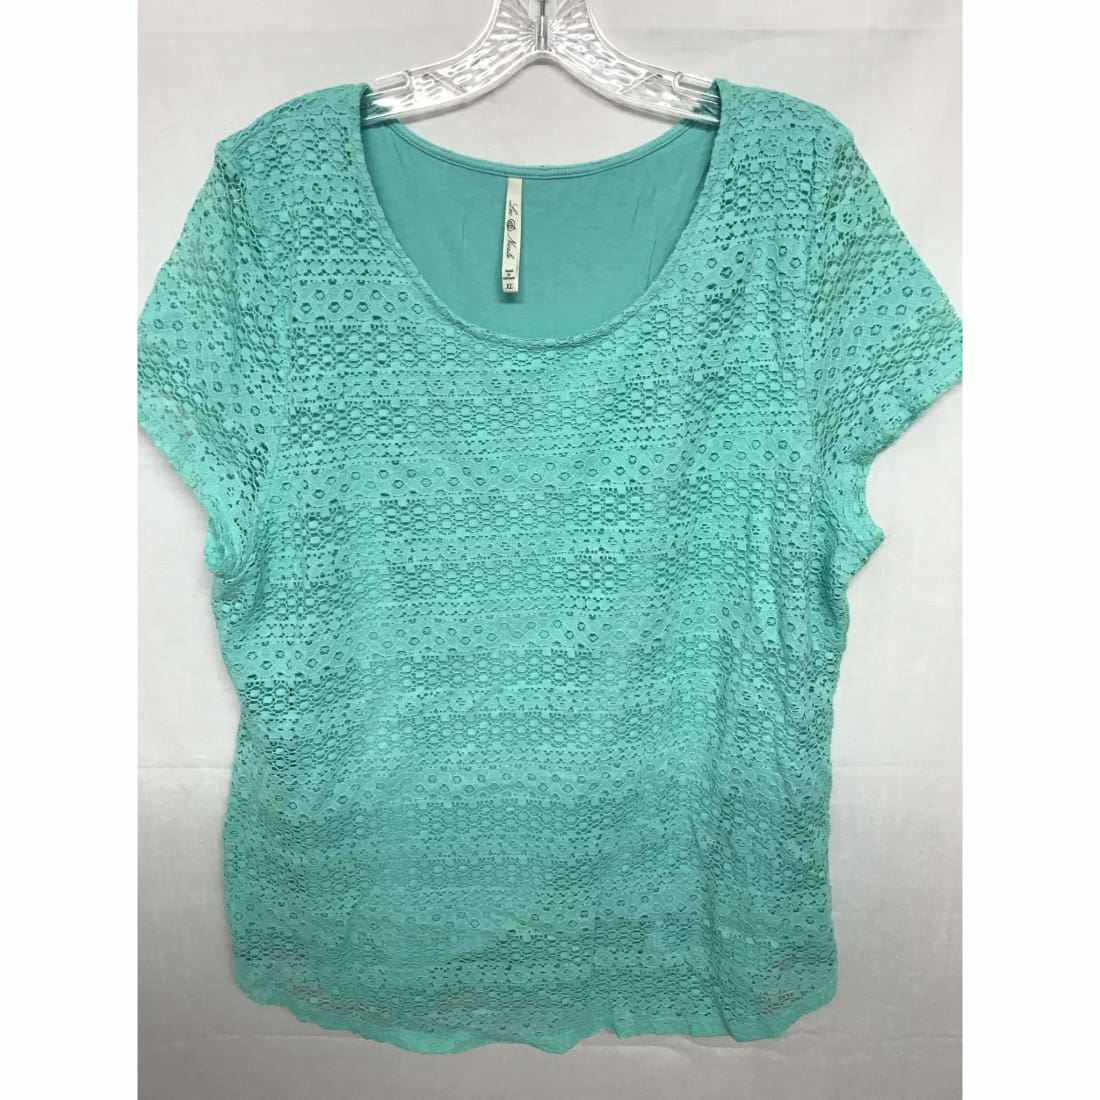 Leo & Nicole Womens Short Sleeve Lace Overlay Blouse M / Teal Tops & Blouses